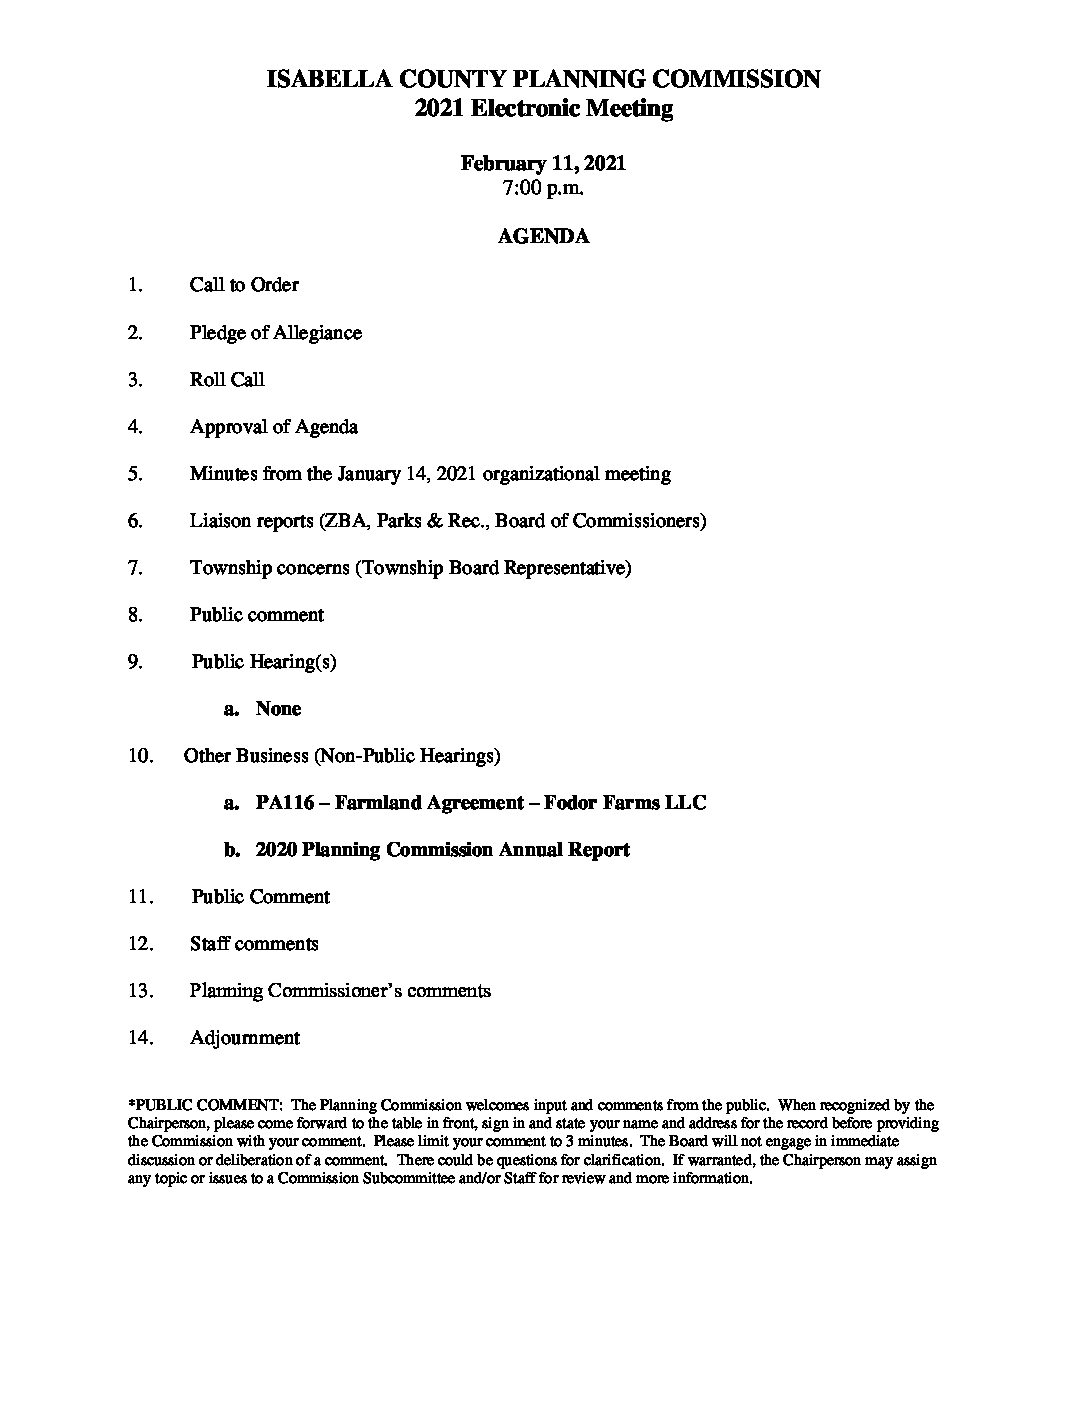 preview image of first page February 11, 2021 Agenda